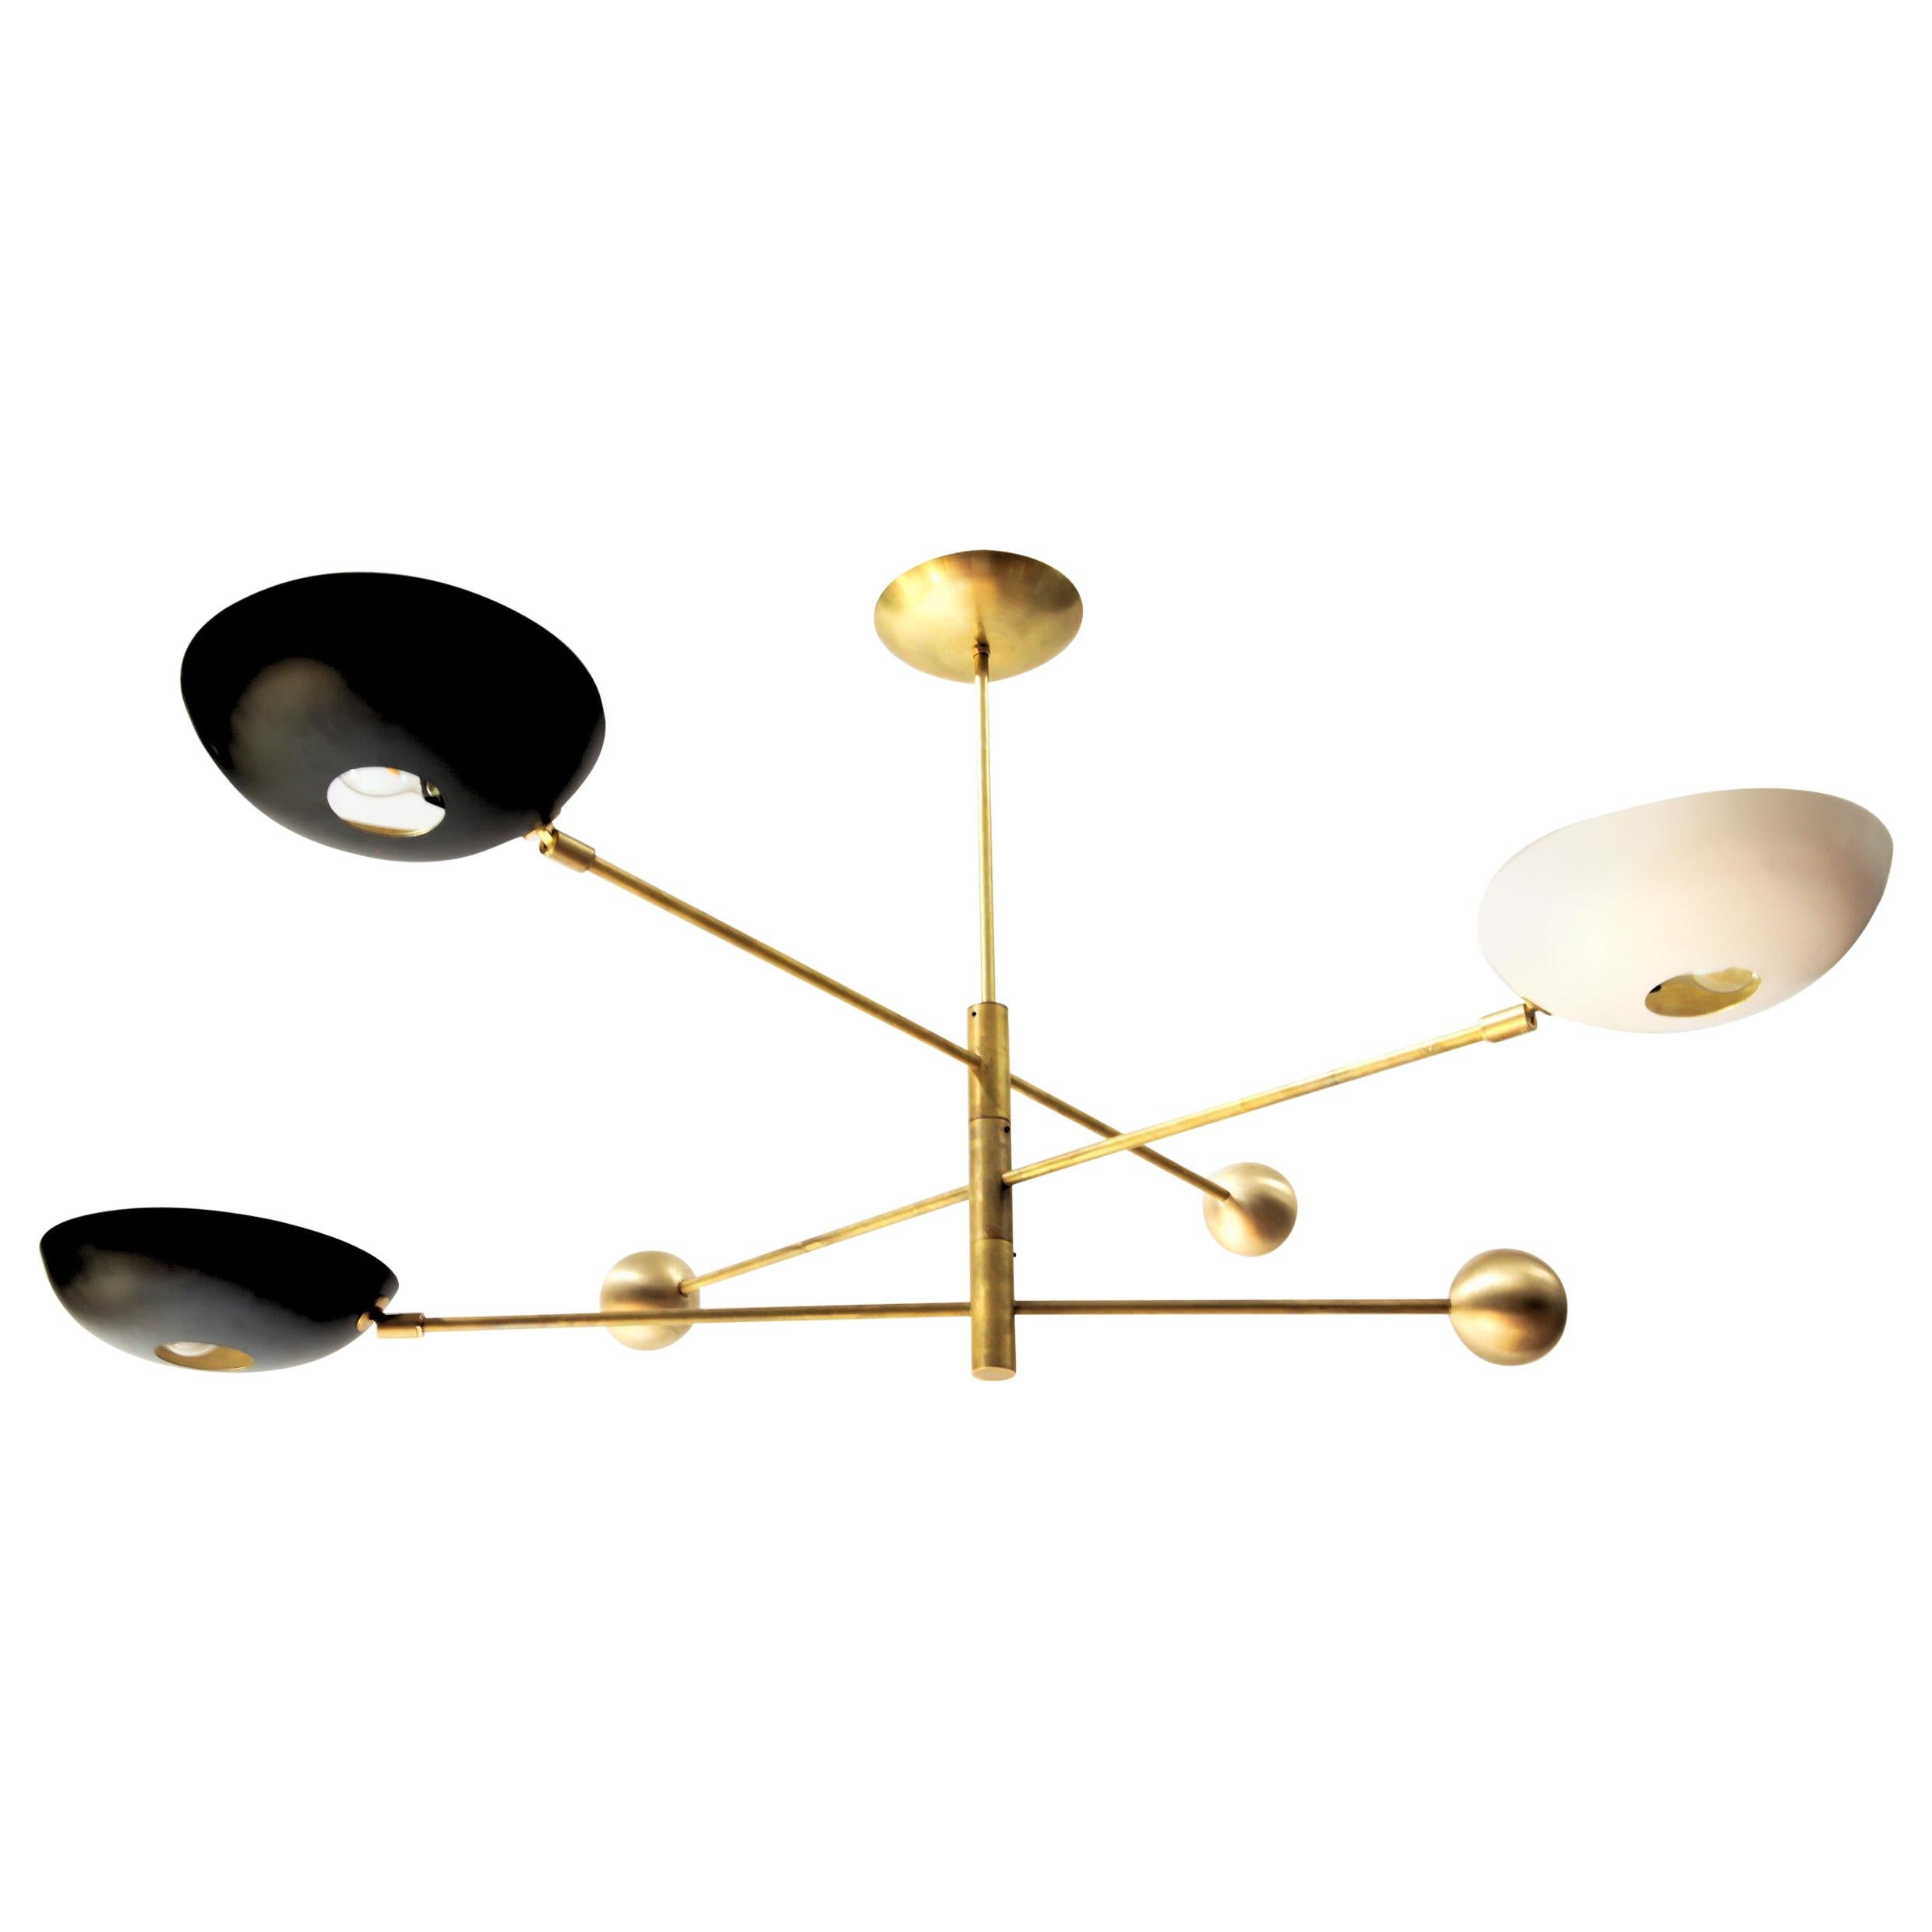 Compact Orbitale Brass Chandelier 3 Rotating Balanced Arms, Low Ceiling Featured